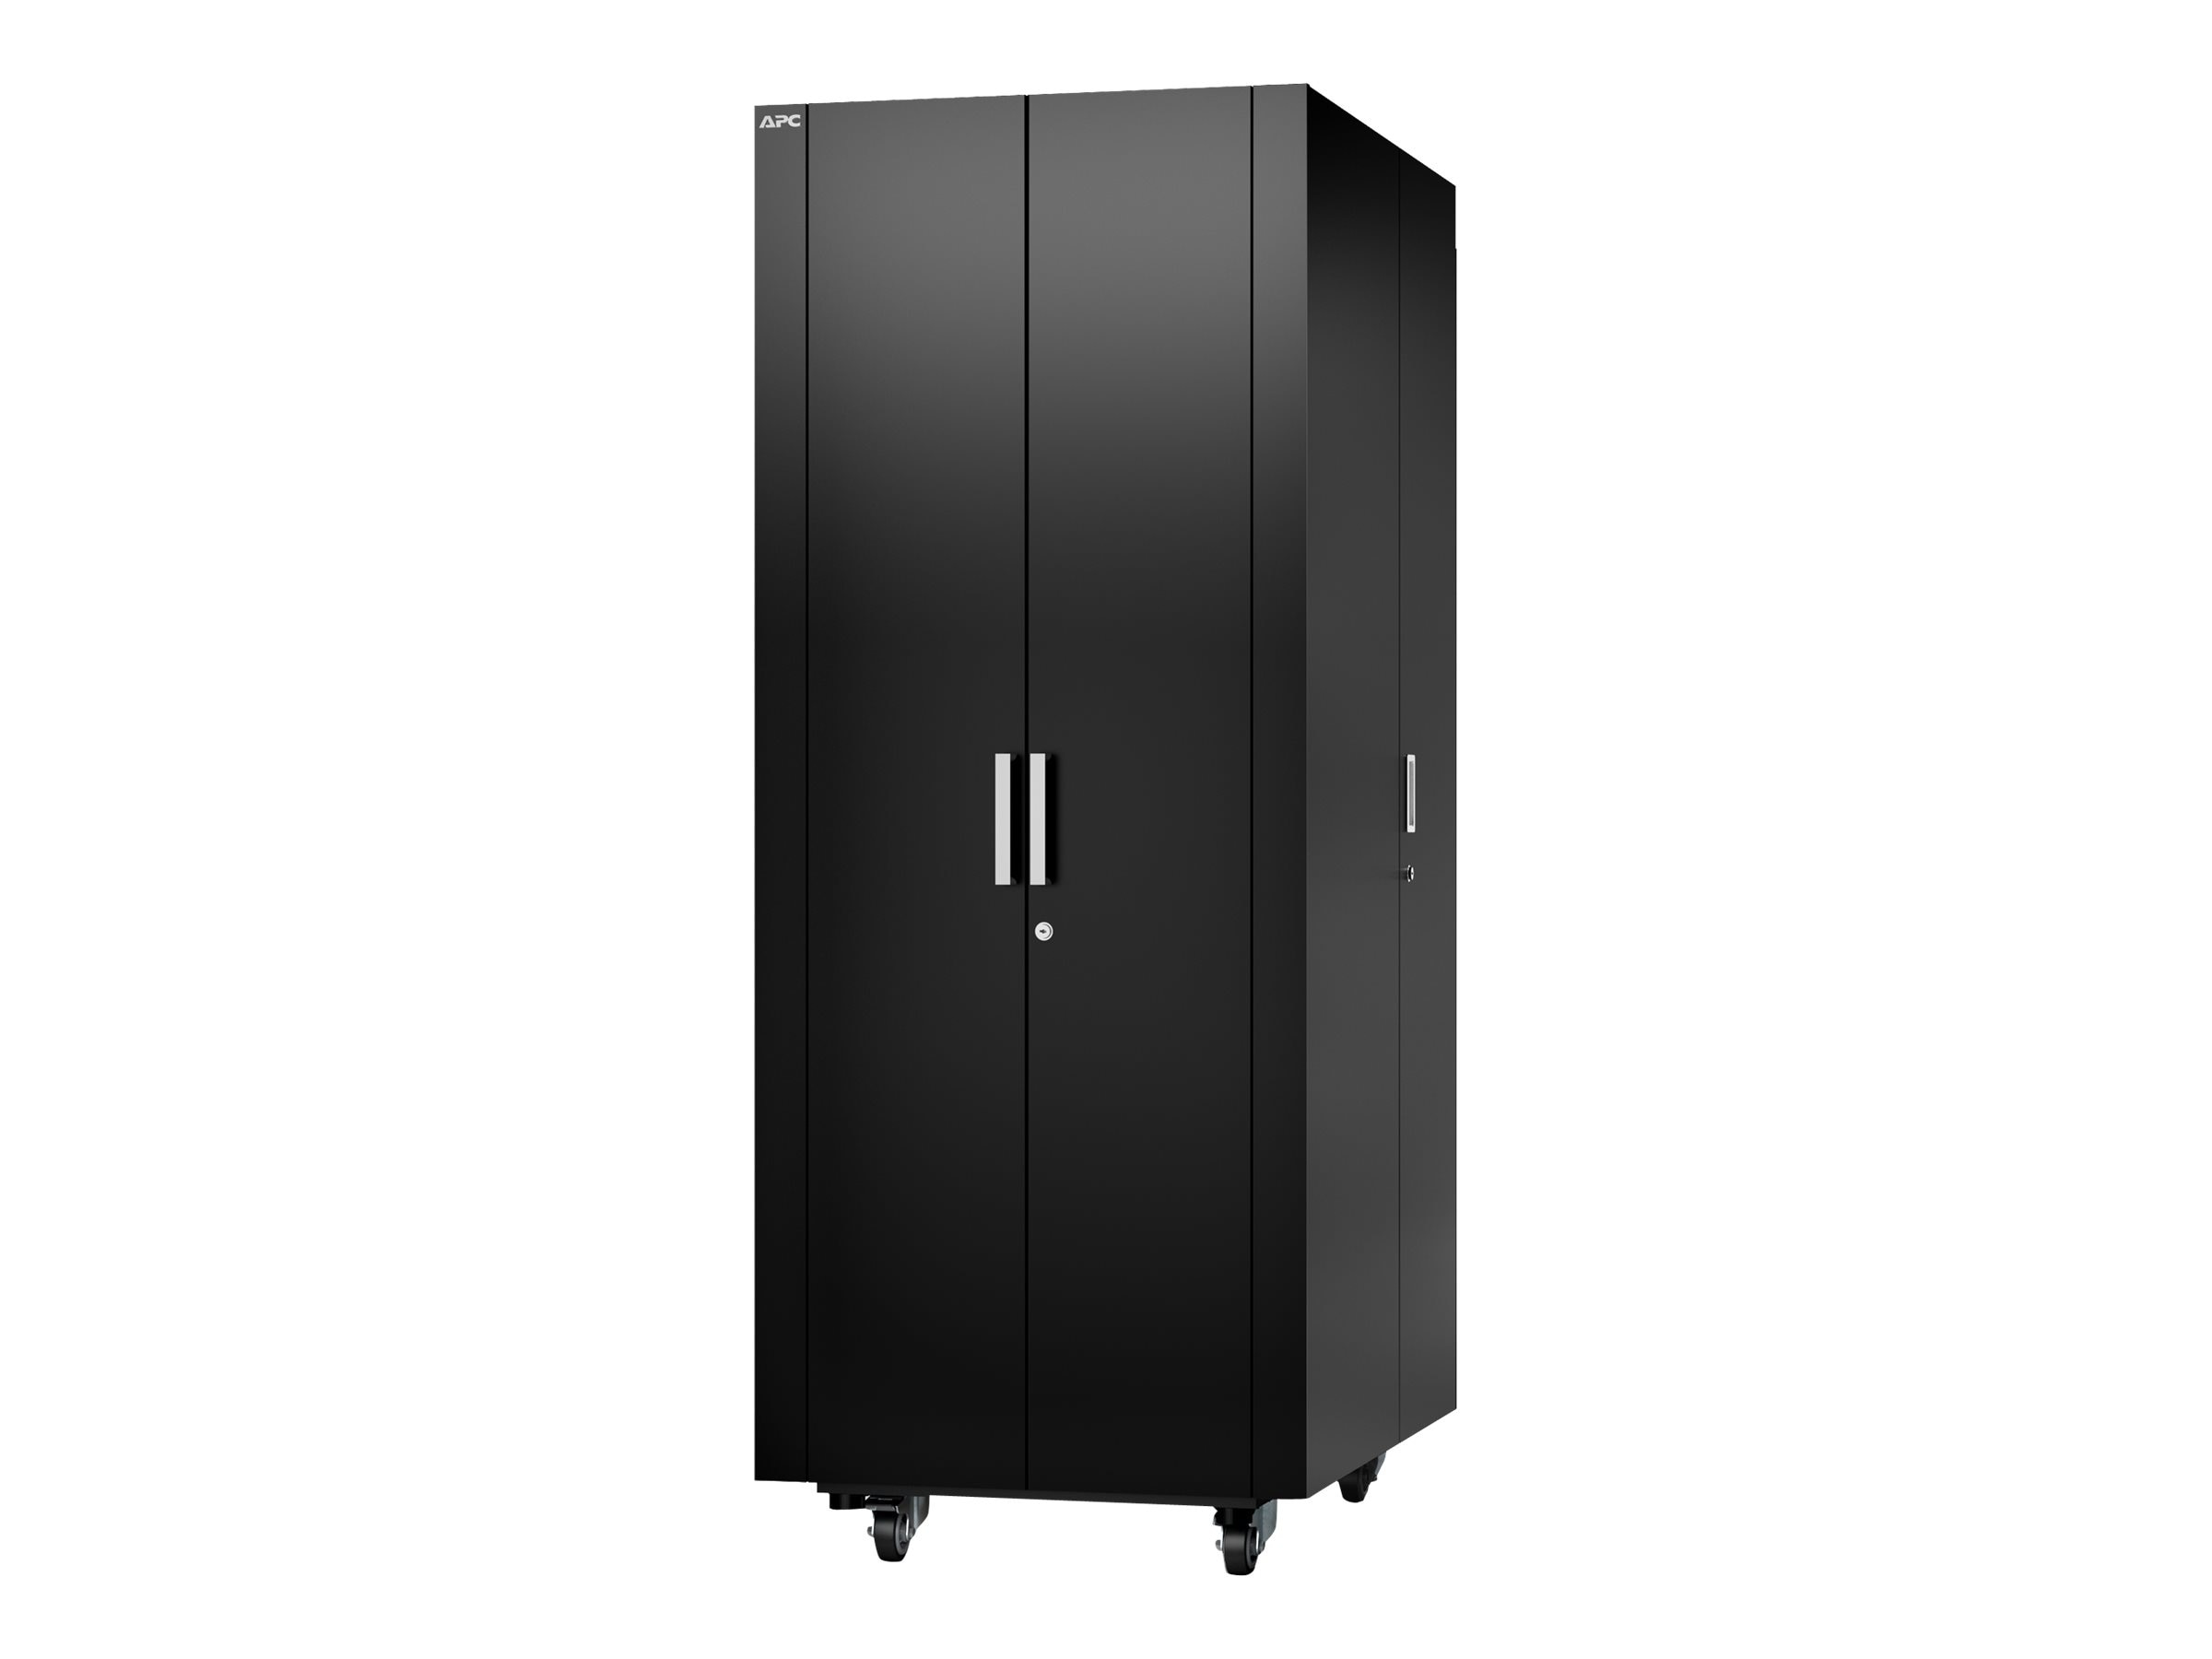 APC Netshelter CX 38U x 750mm x 1130mm Deep Enclosure, Black, AR4038X429